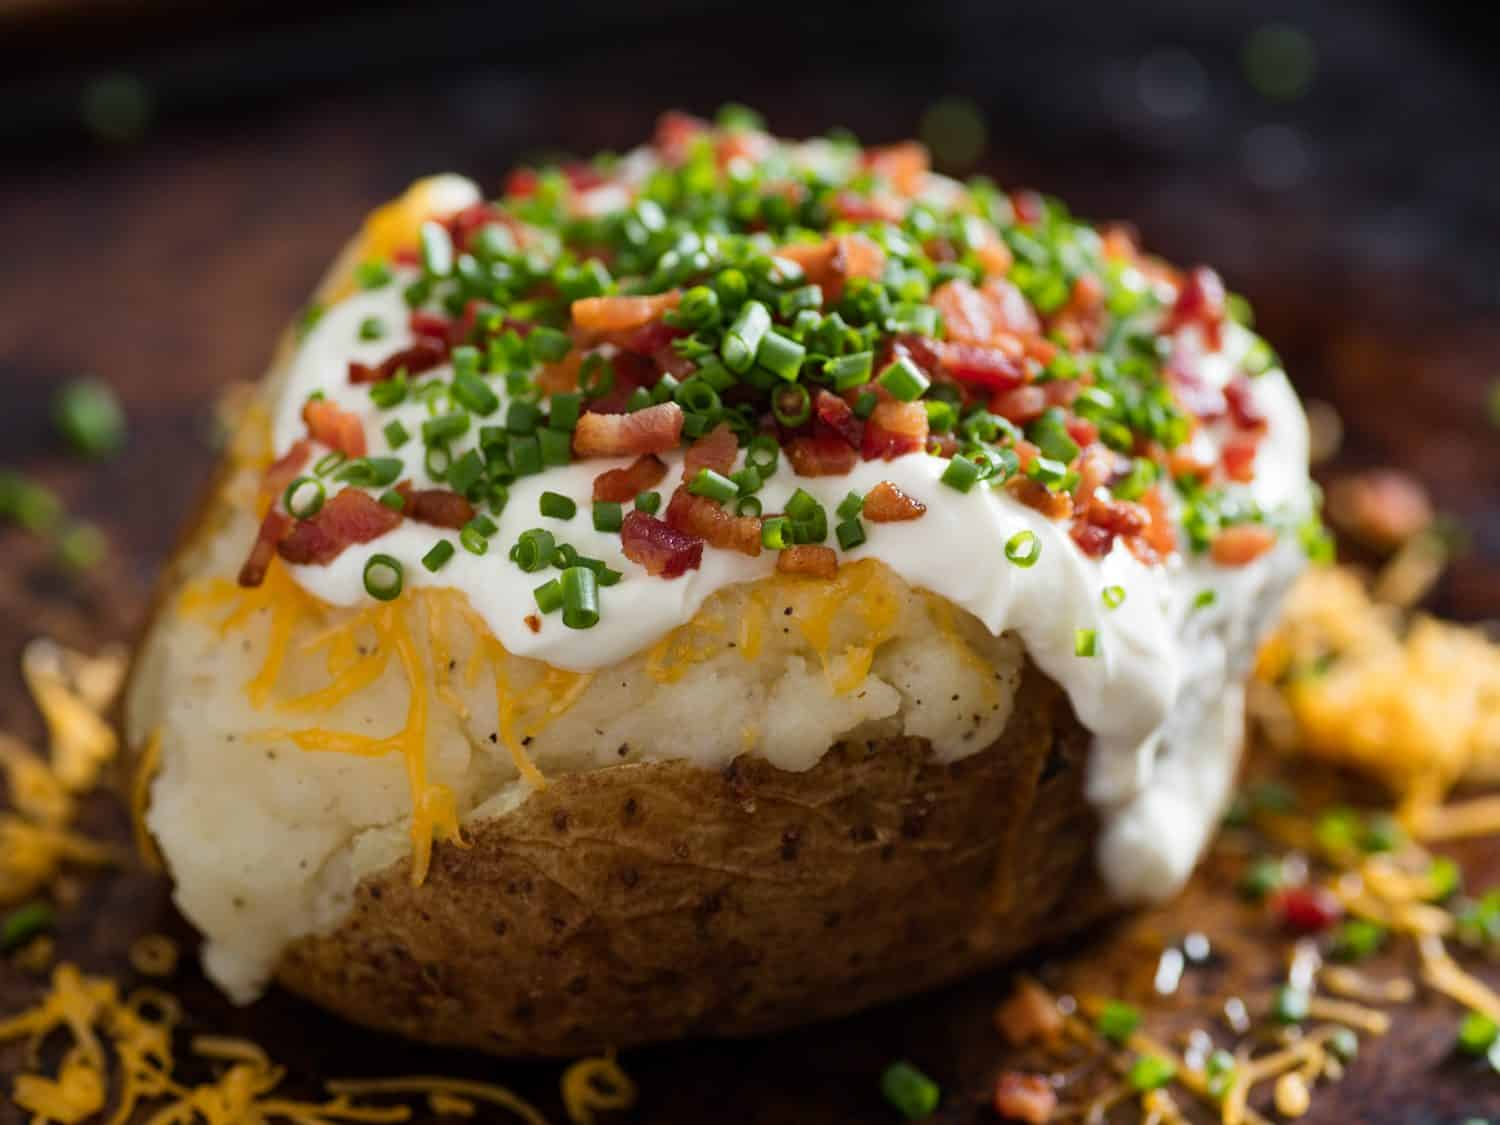 The ultimate baked potato recie